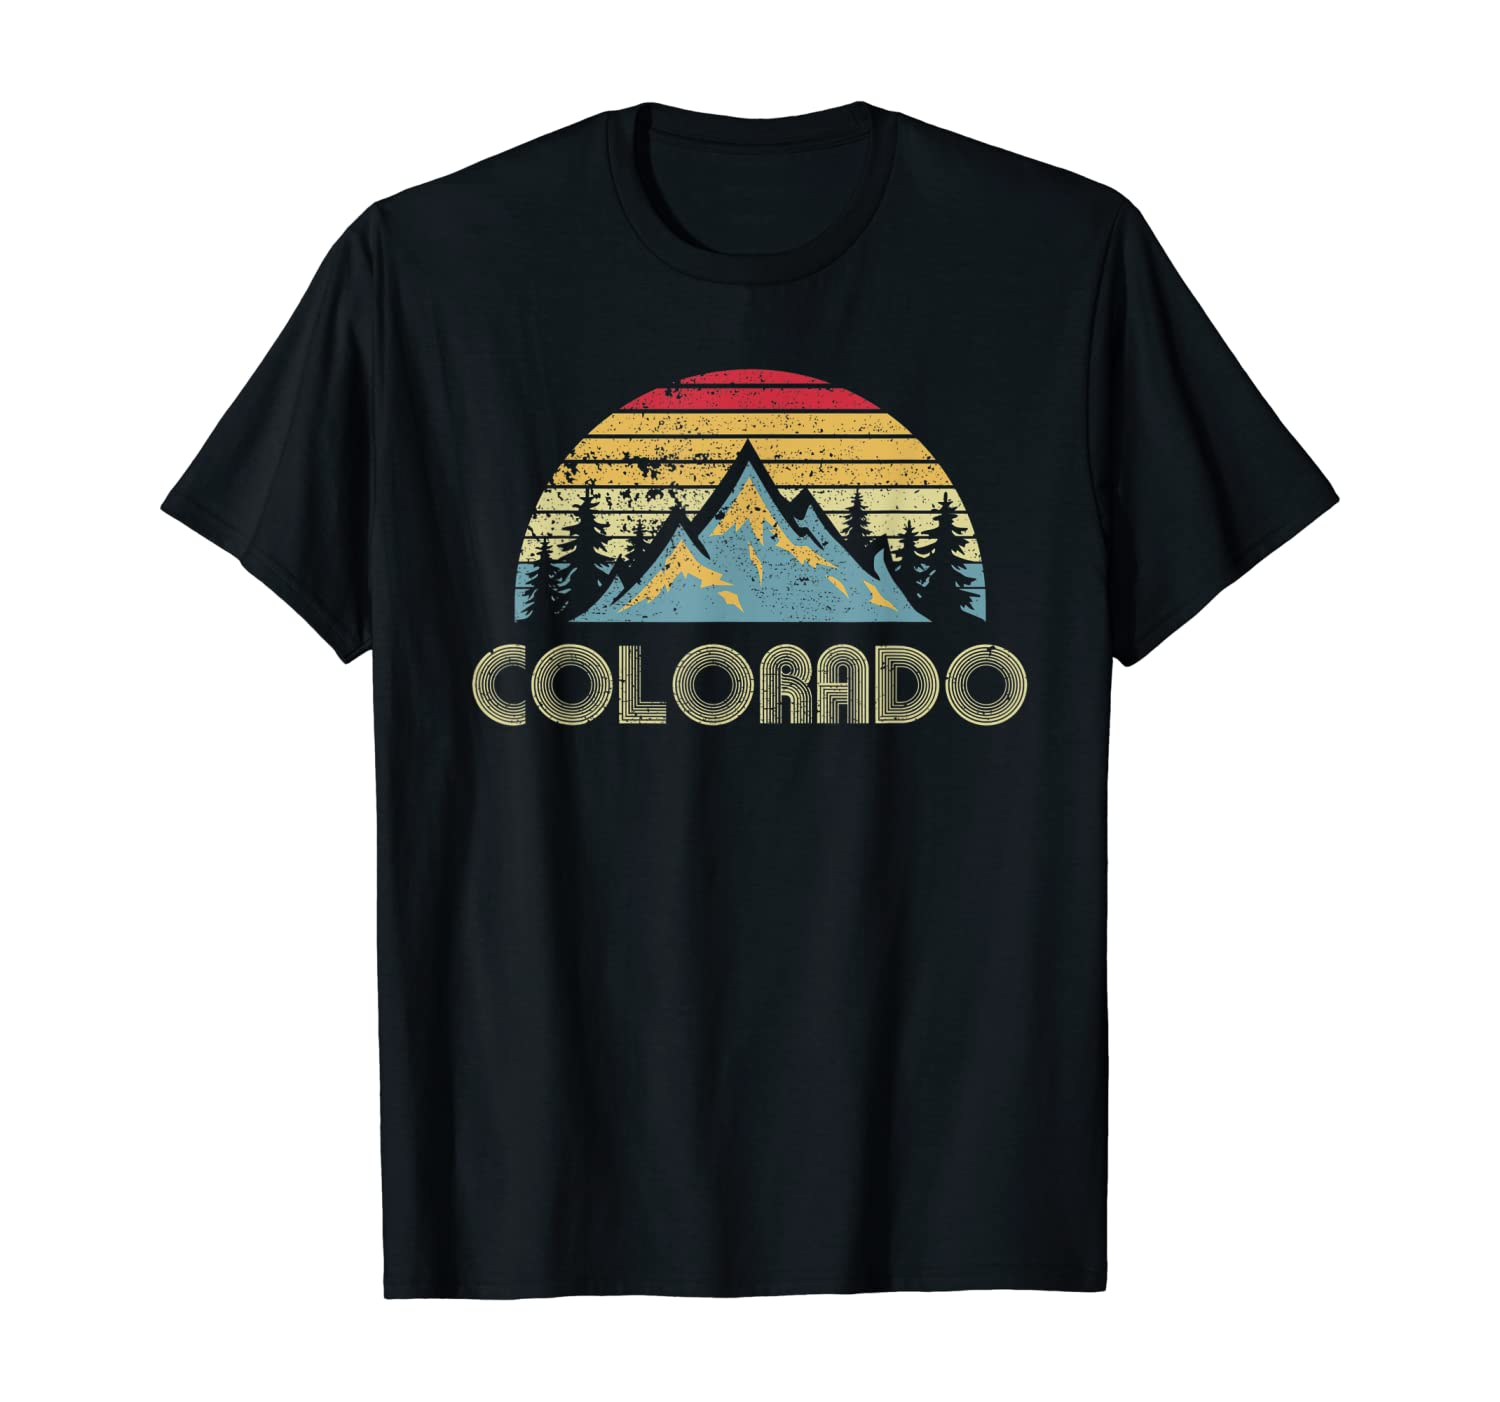 Colorado Tee - Retro Vintage Mountains Nature Hiking T Shirt